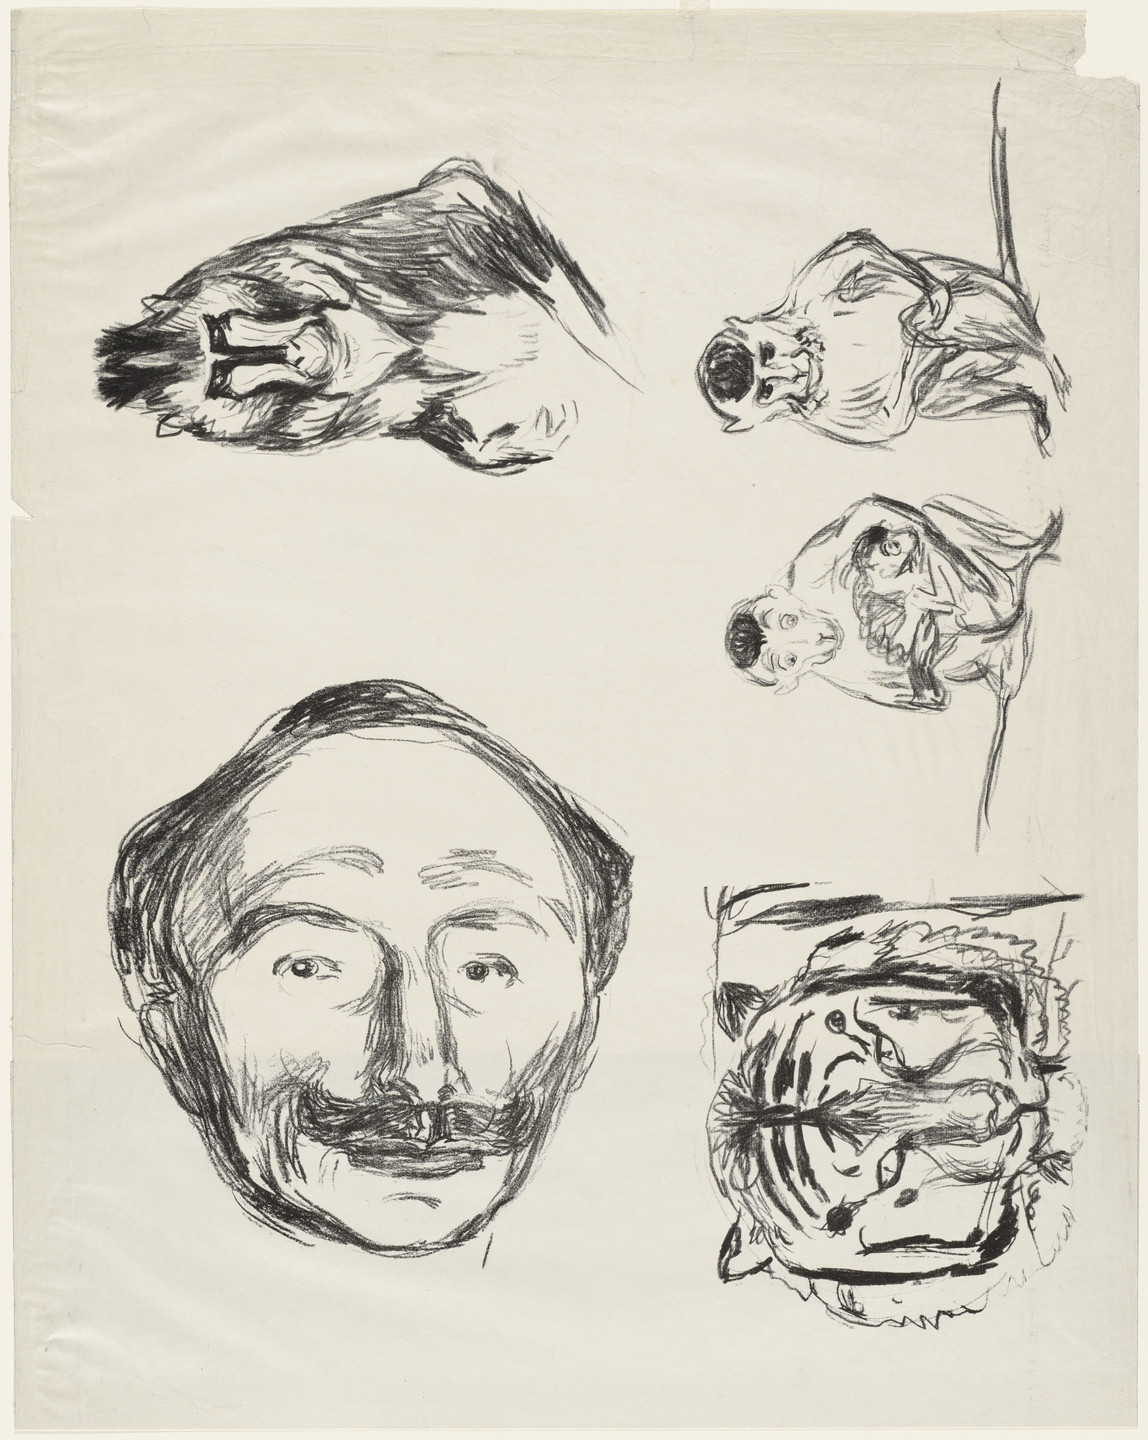 Edvard Munch. Four Studies (Portrait of Goldstein, Gorilla, Family of Monkeys and Tiger's Head). 1908-09